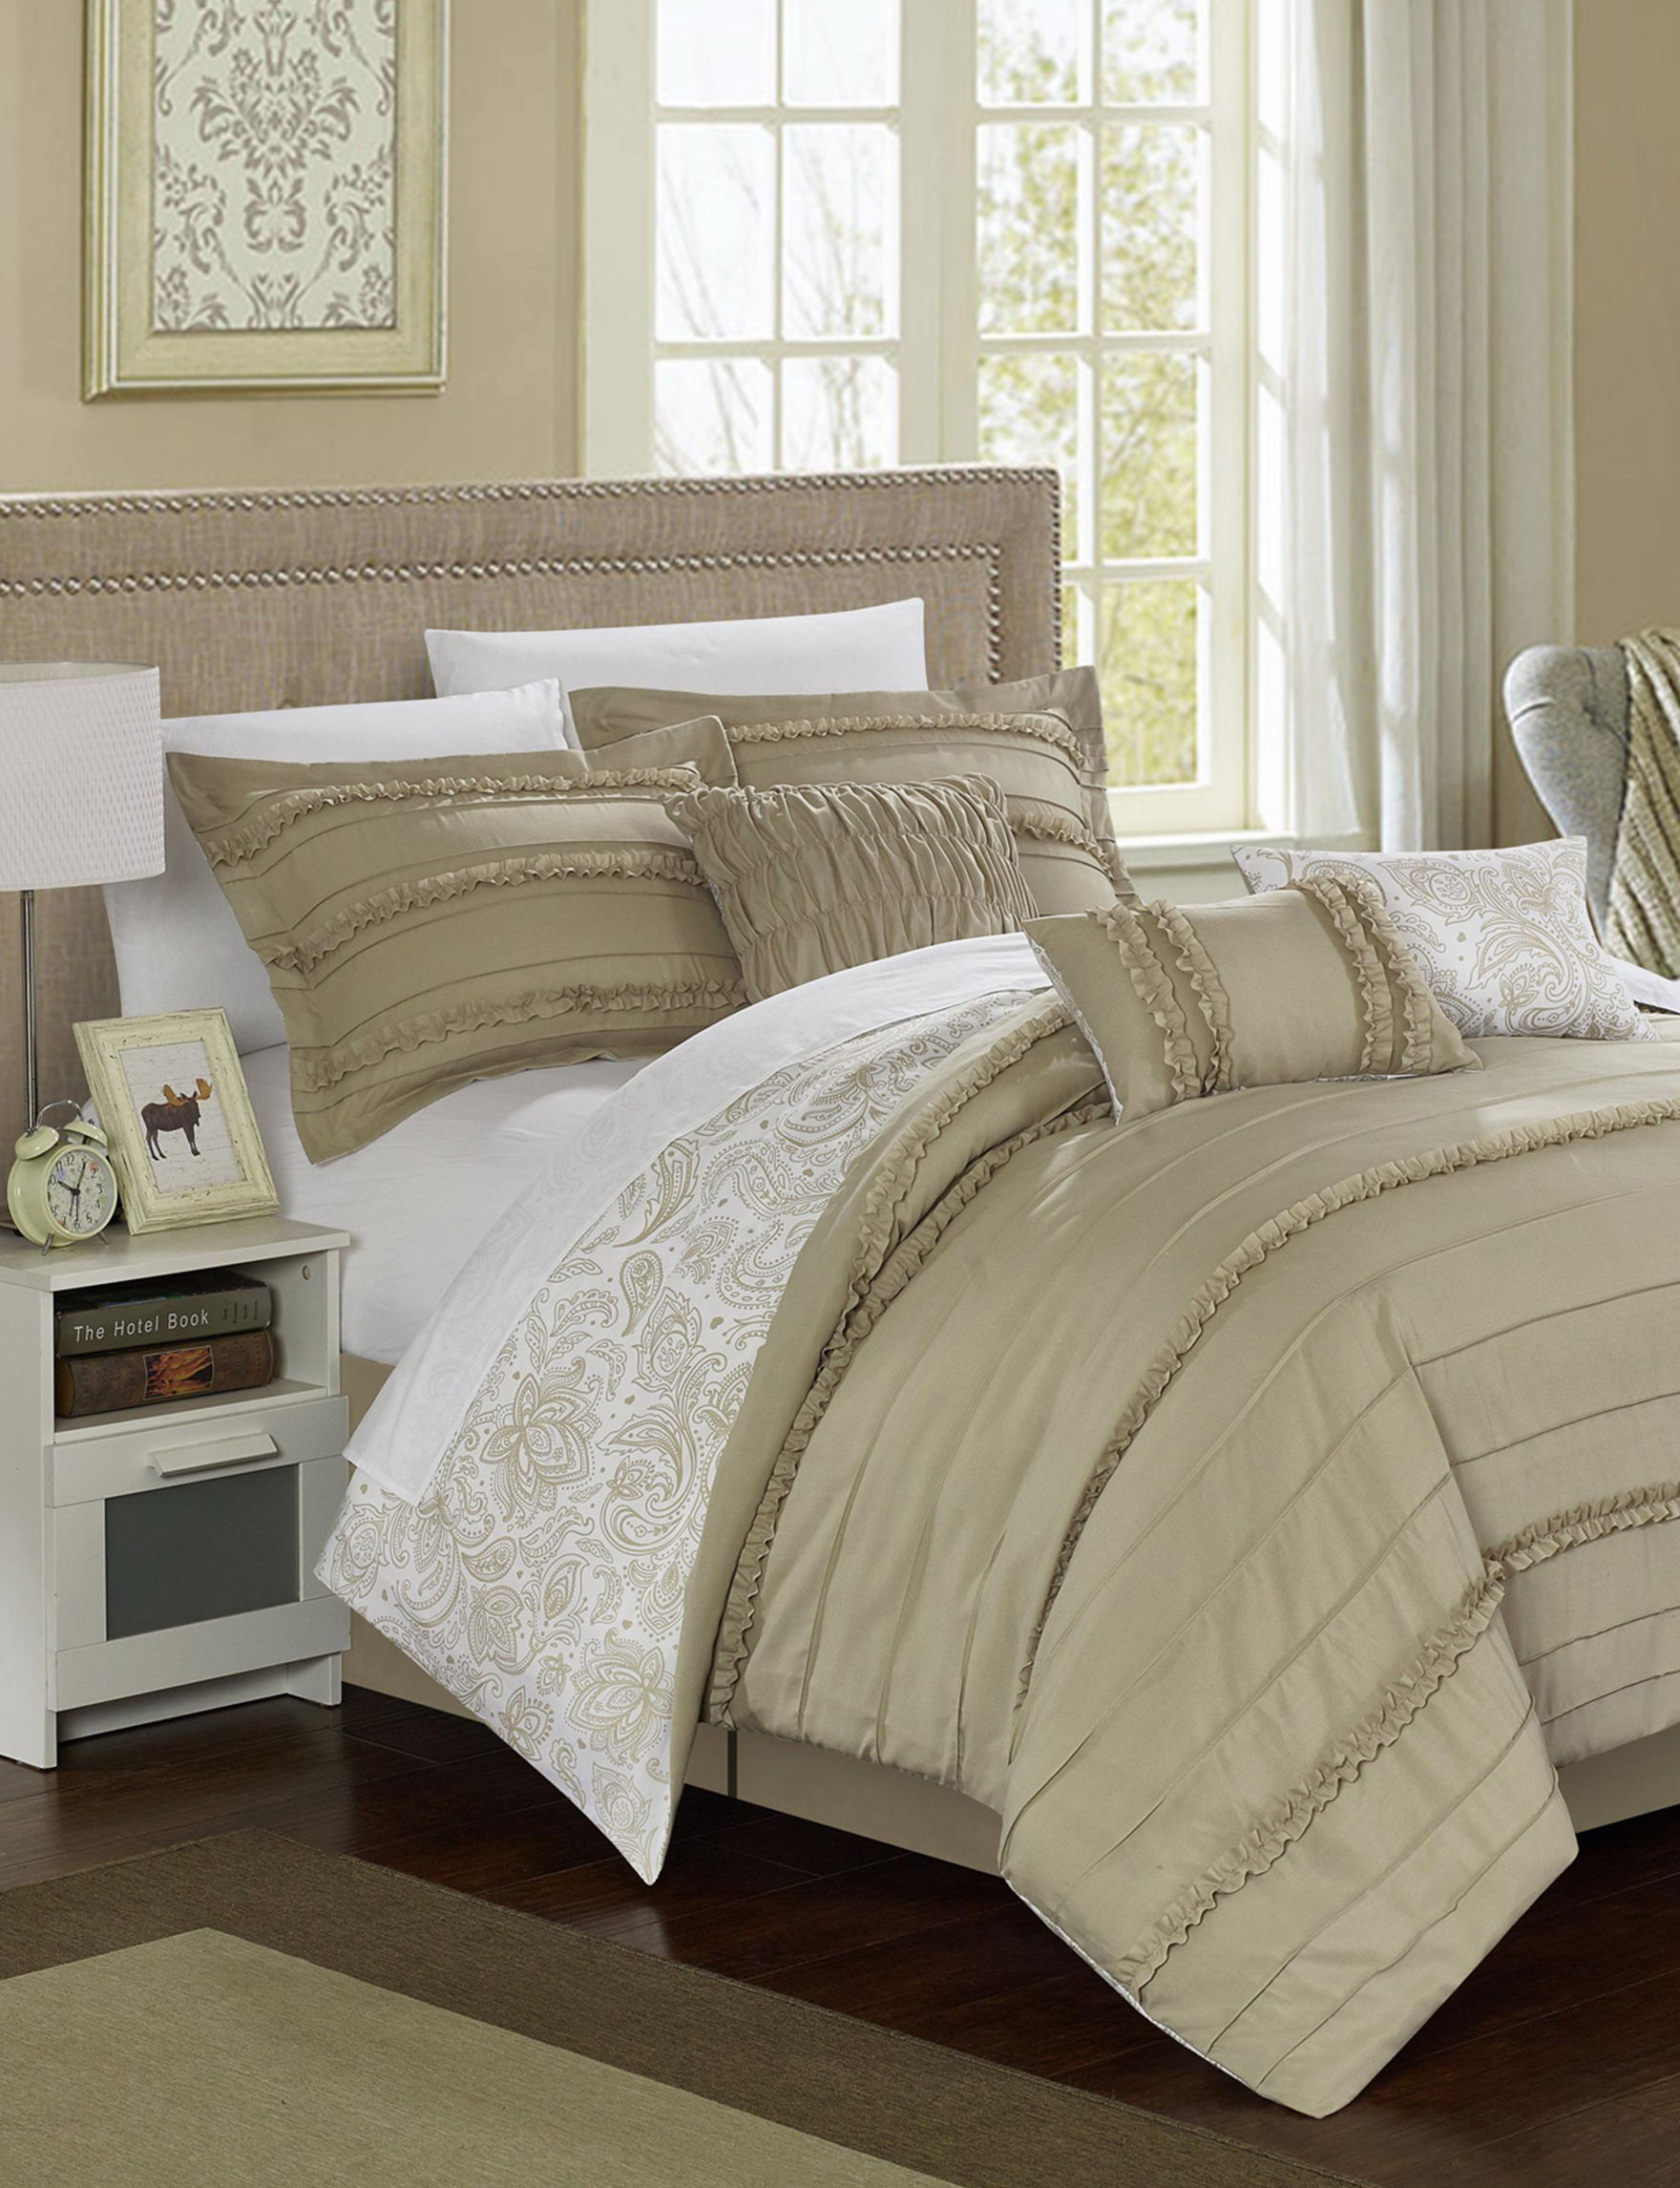 Chic Home Design Beige Comforters & Comforter Sets